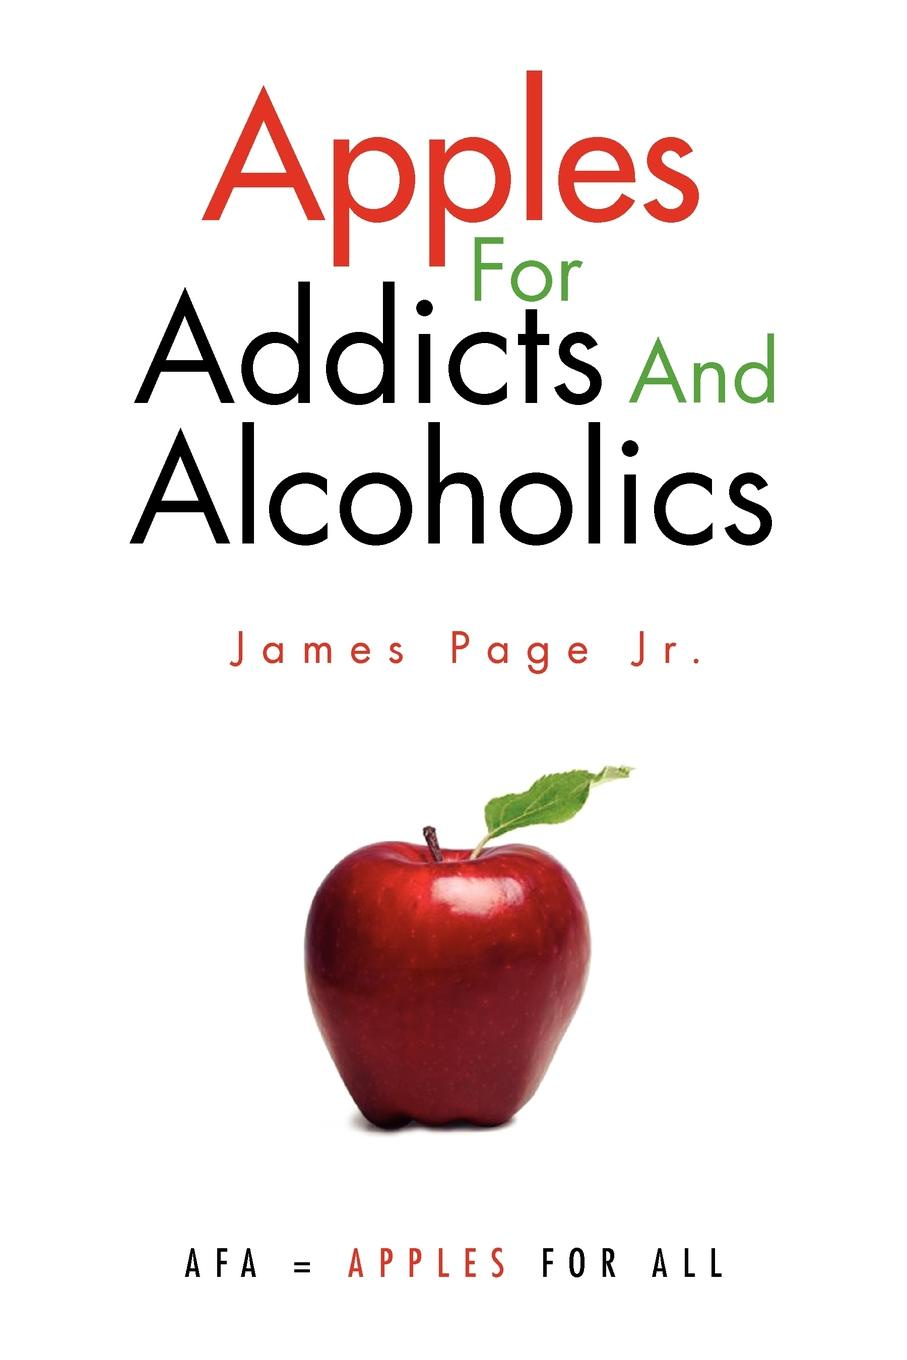 James Page Jr. Apples for Addicts and Alcoholics sitemap 2 xml page 2 page 2 page 9 page 10